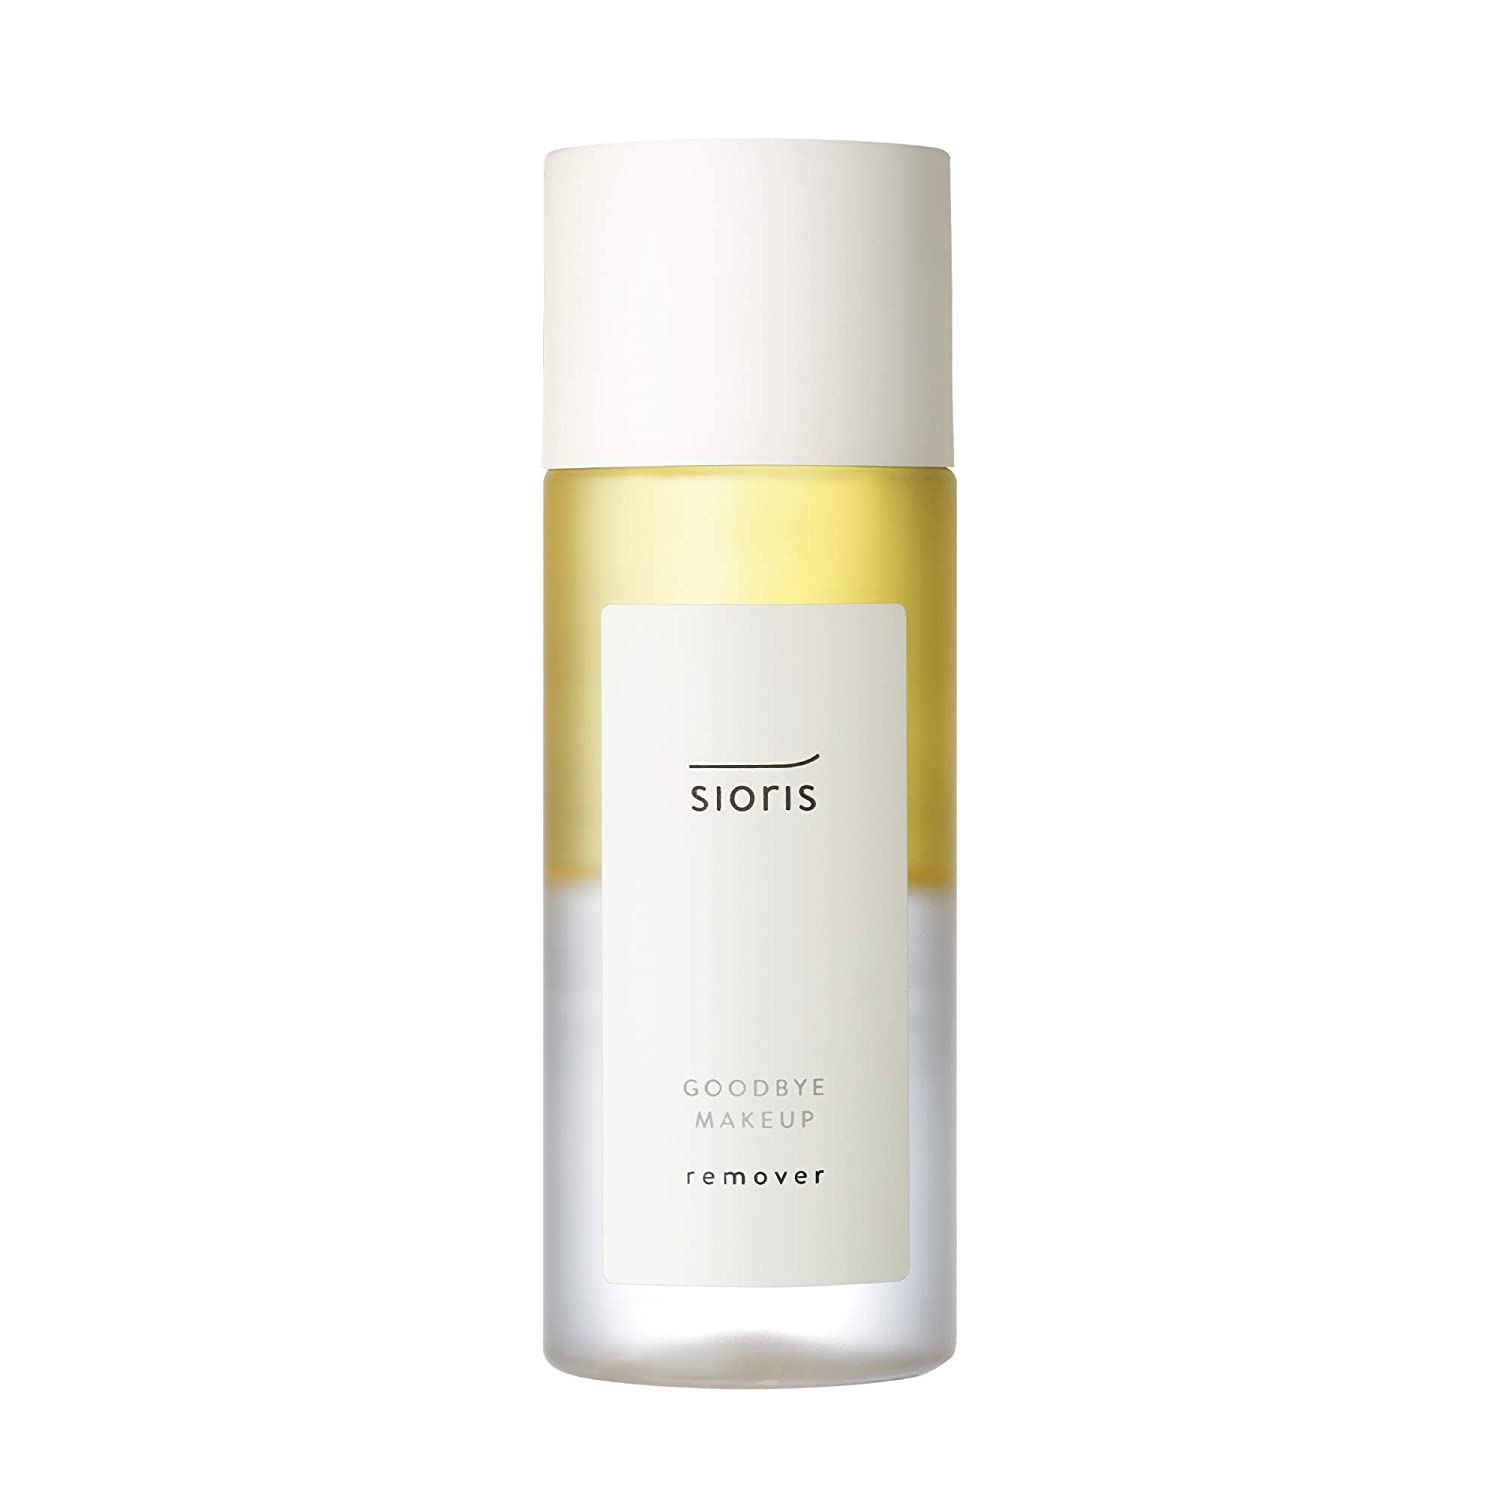 SIORIS Goodbye Makeup Remover - Face Purchase Cleanser with N Oil up Purchase Make